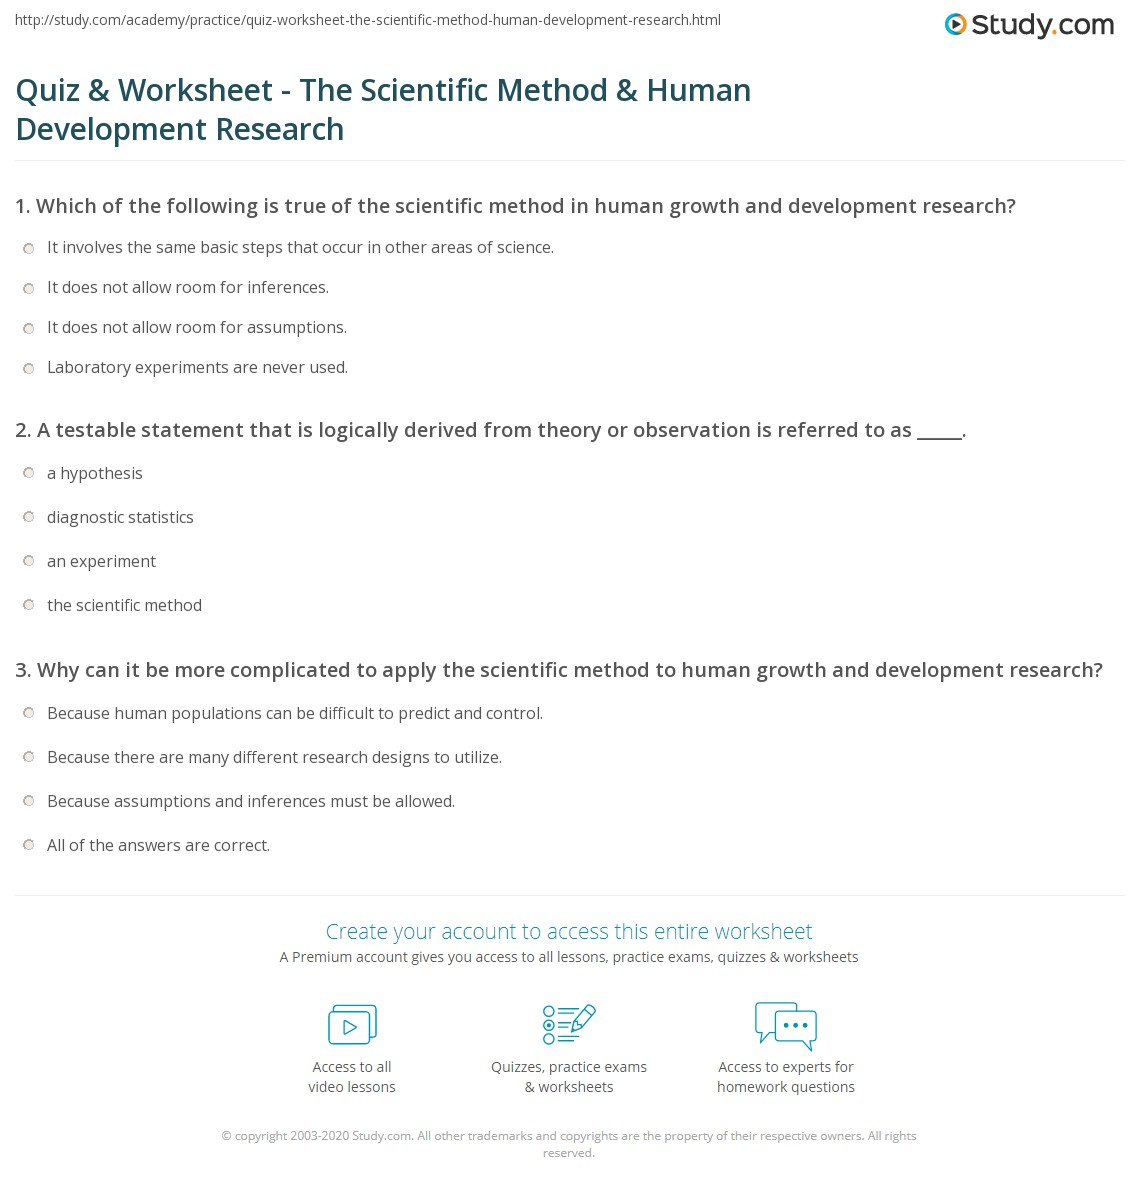 quiz worksheet the scientific method human development print scientific method applications to human growth and development research worksheet